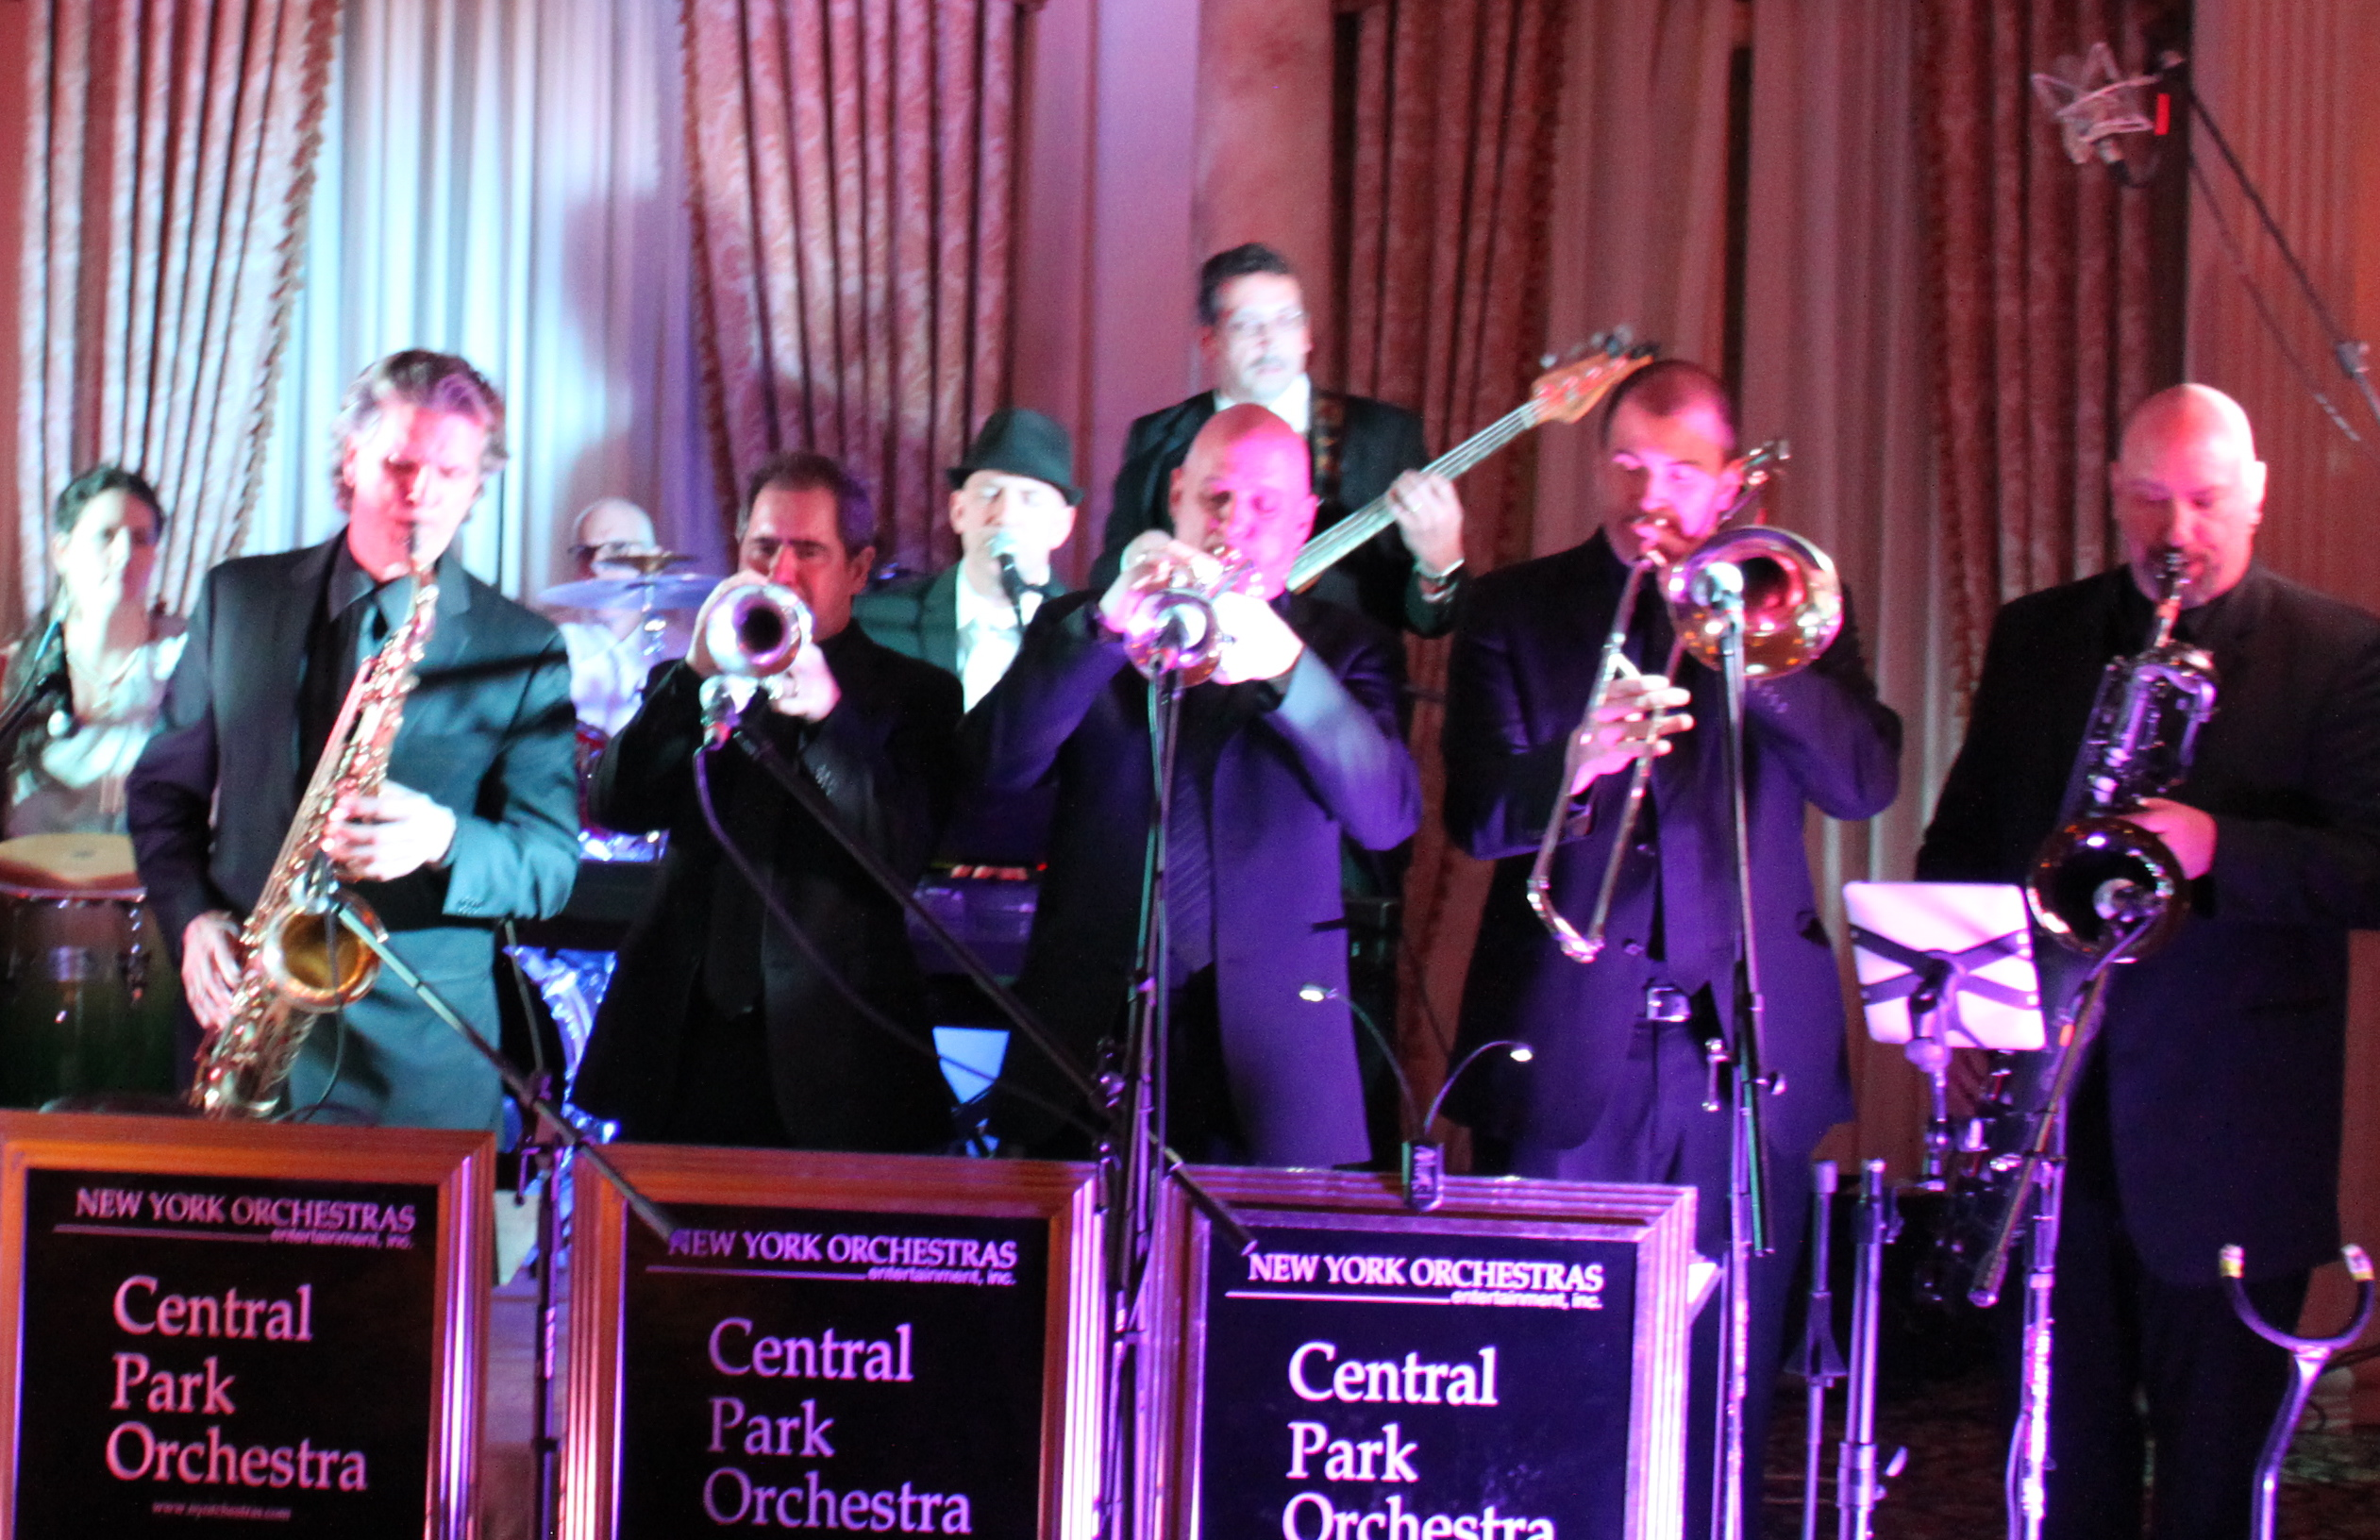 Central Park Orchestra A New York Wedding Band Live Wedding Bands In New York Amp NY DJs